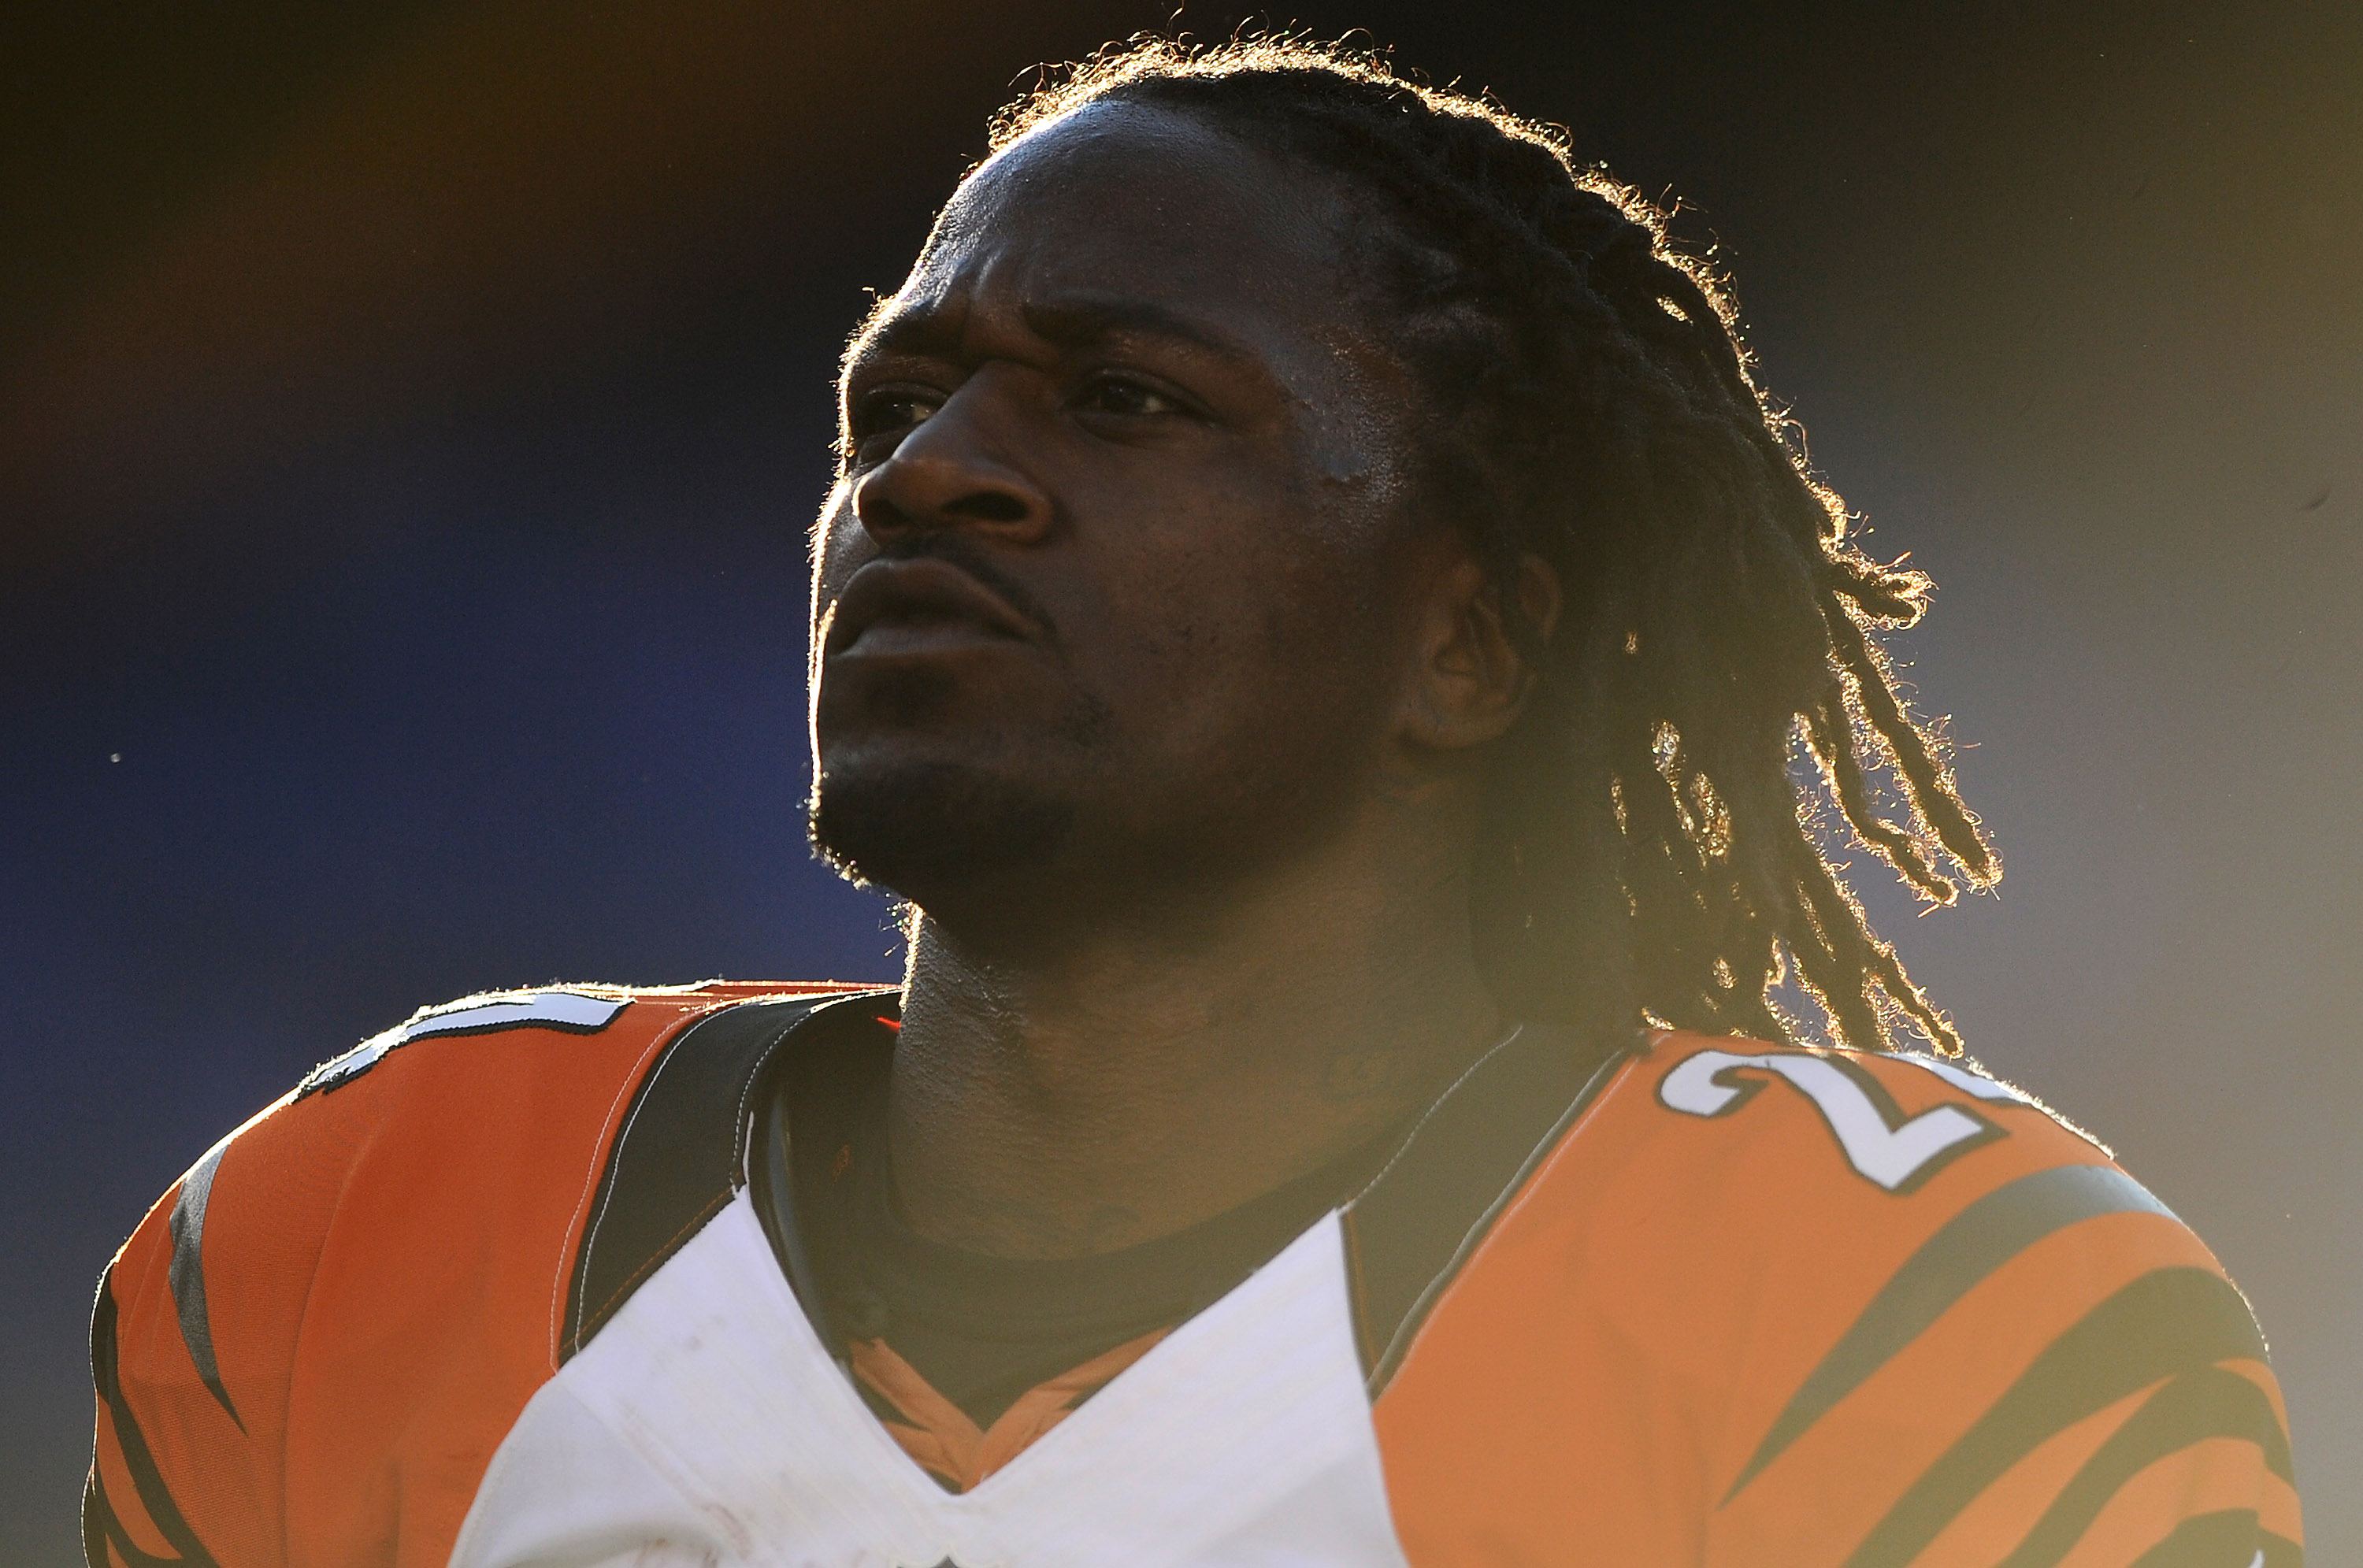 BALTIMORE, MD - SEPTEMBER 10: Cornerback Adam Jones #24 of the Cincinnati Bengals stands on the field before playing the Baltimore Ravens at M&T Bank Stadium on September 10, 2012 in Baltimore, Maryland. The Ravens won 44-13. (Photo by Patrick Smith/Getty